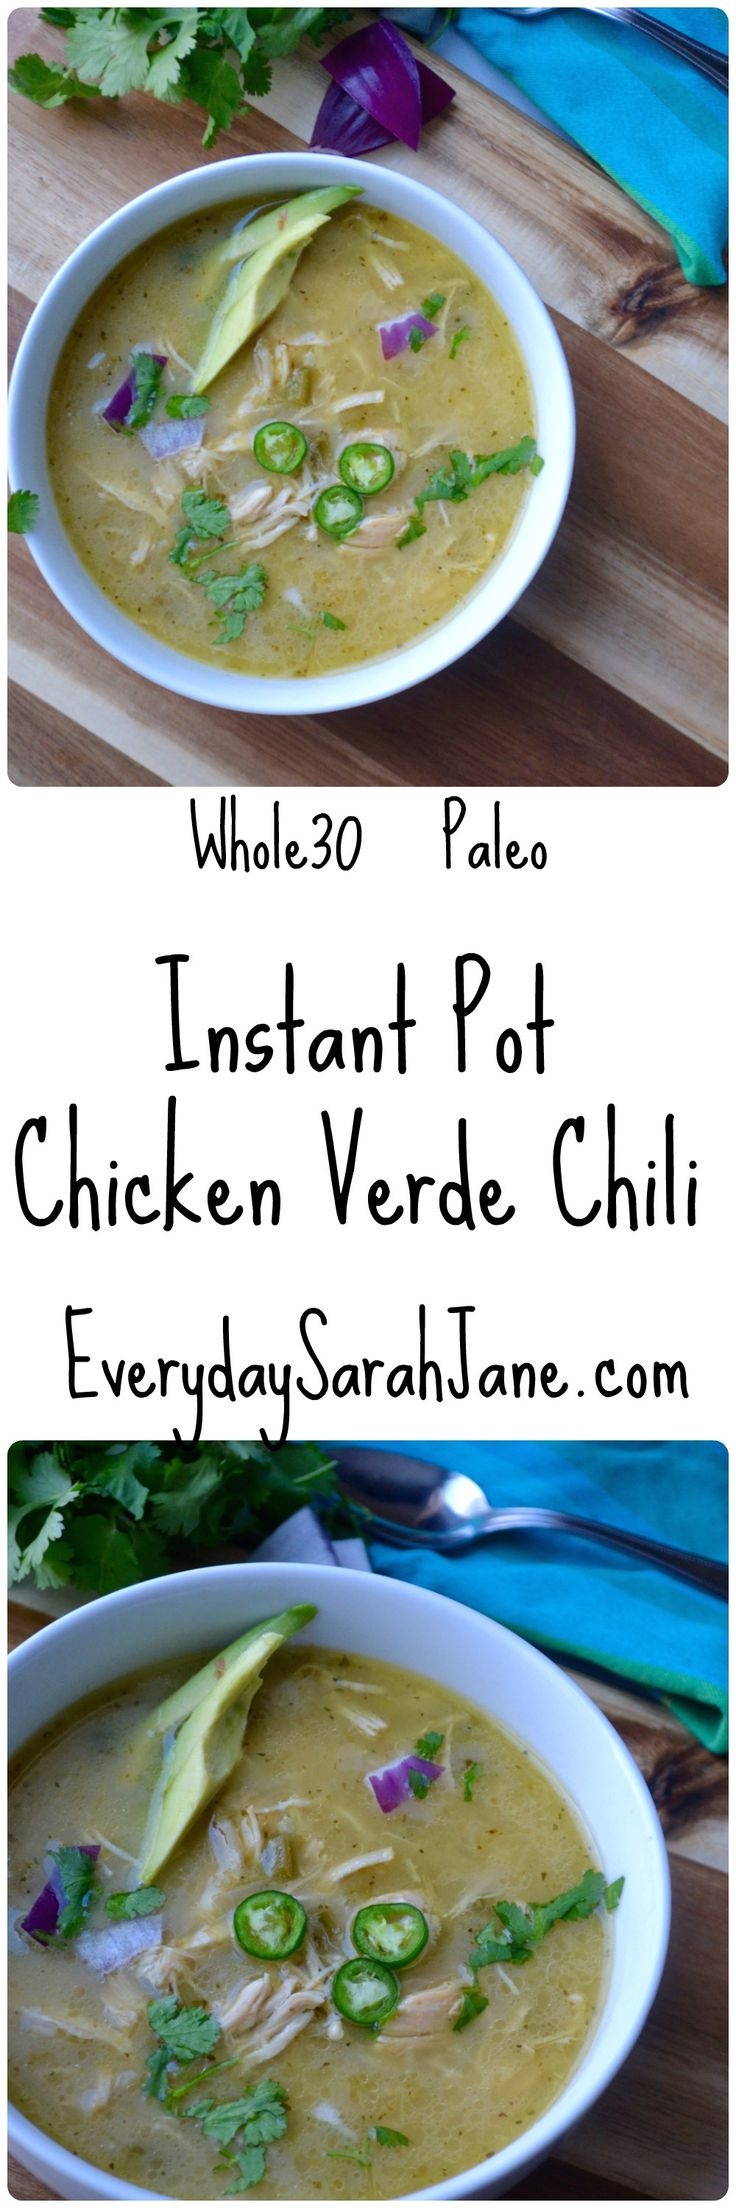 The most delicious #whole30 chili ever!